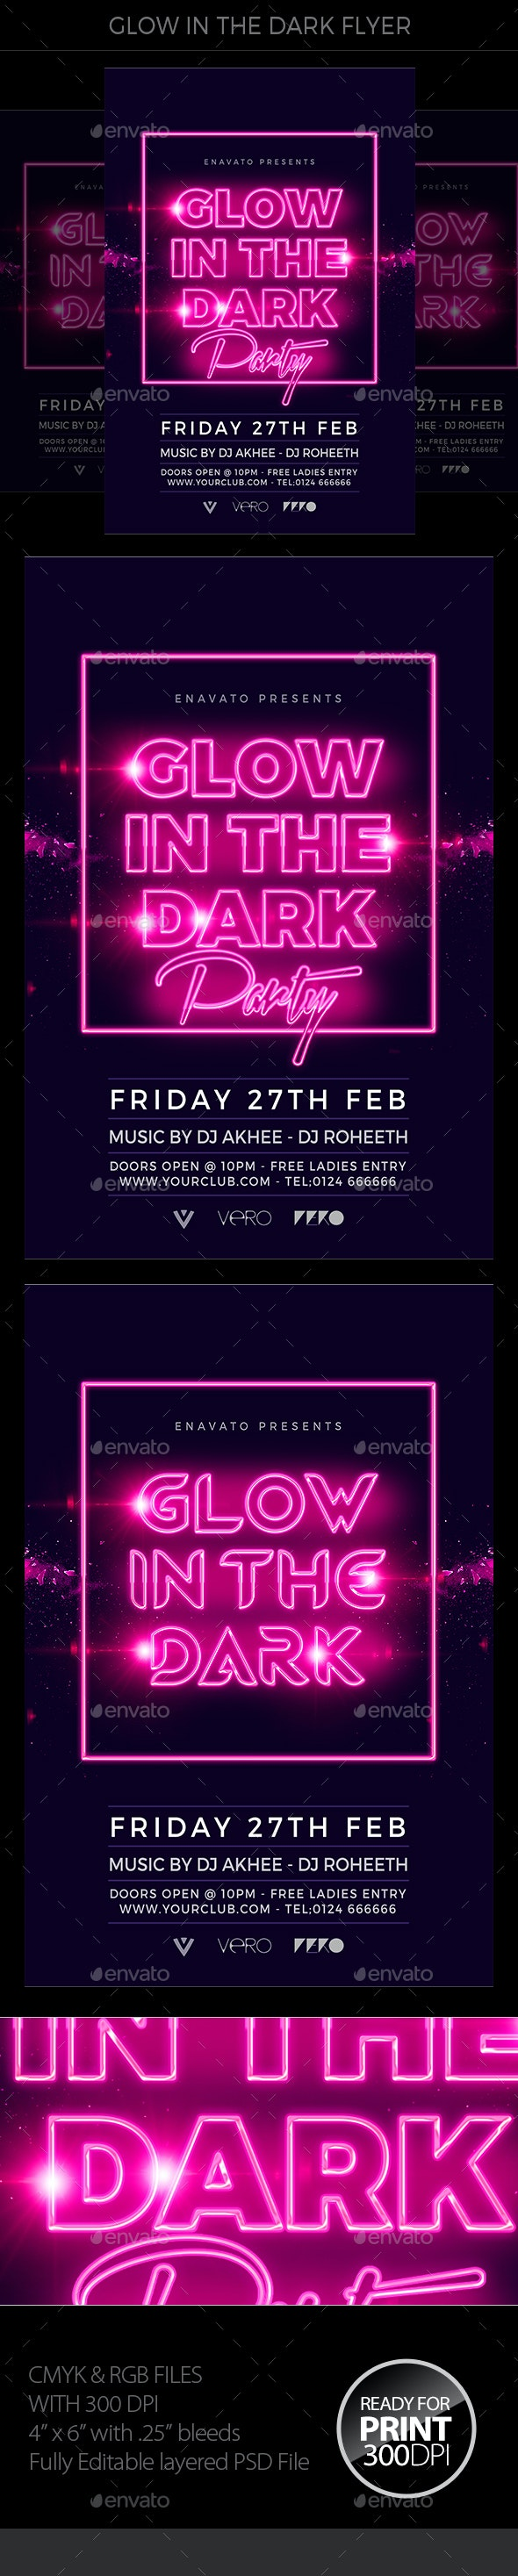 Glow In The Dark Flyer - Events Flyers